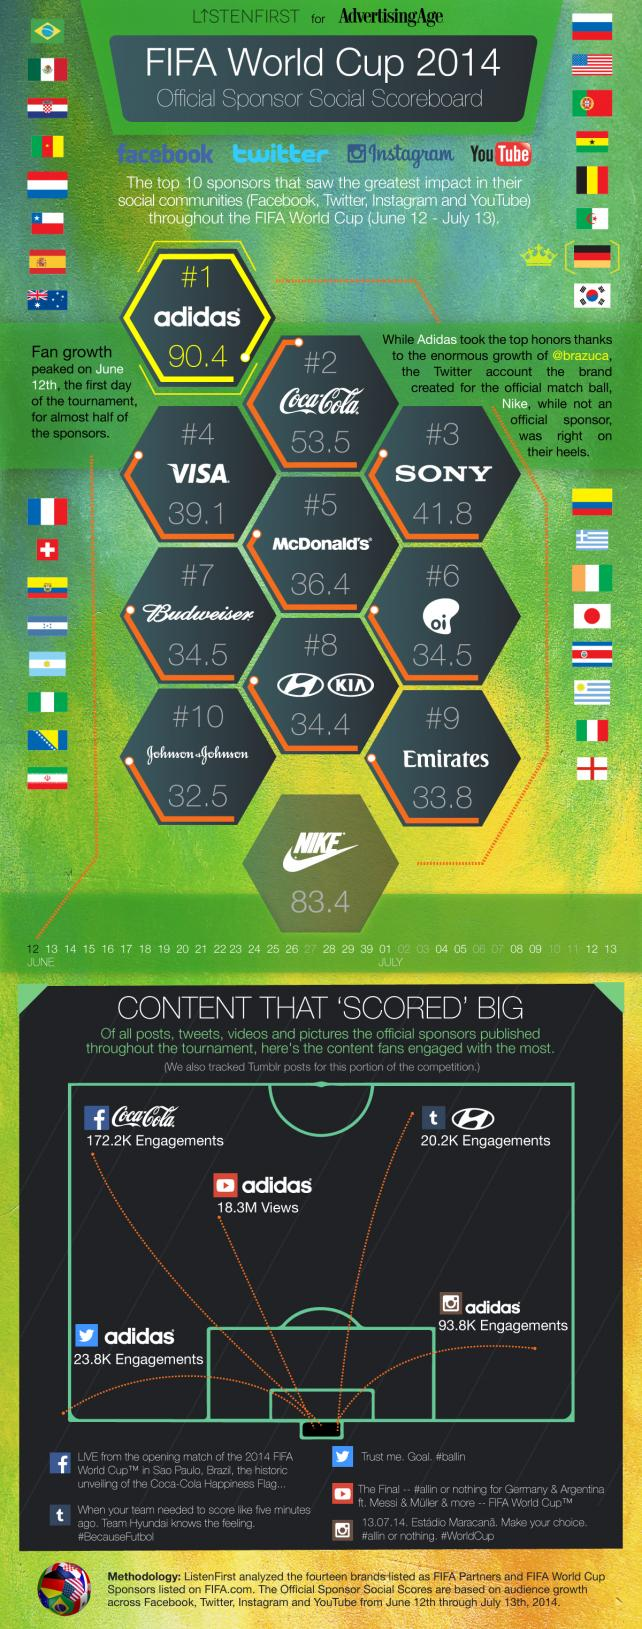 The 10 World Cup Sponsors That Grew the Most in Followers, Fans and Subscribers